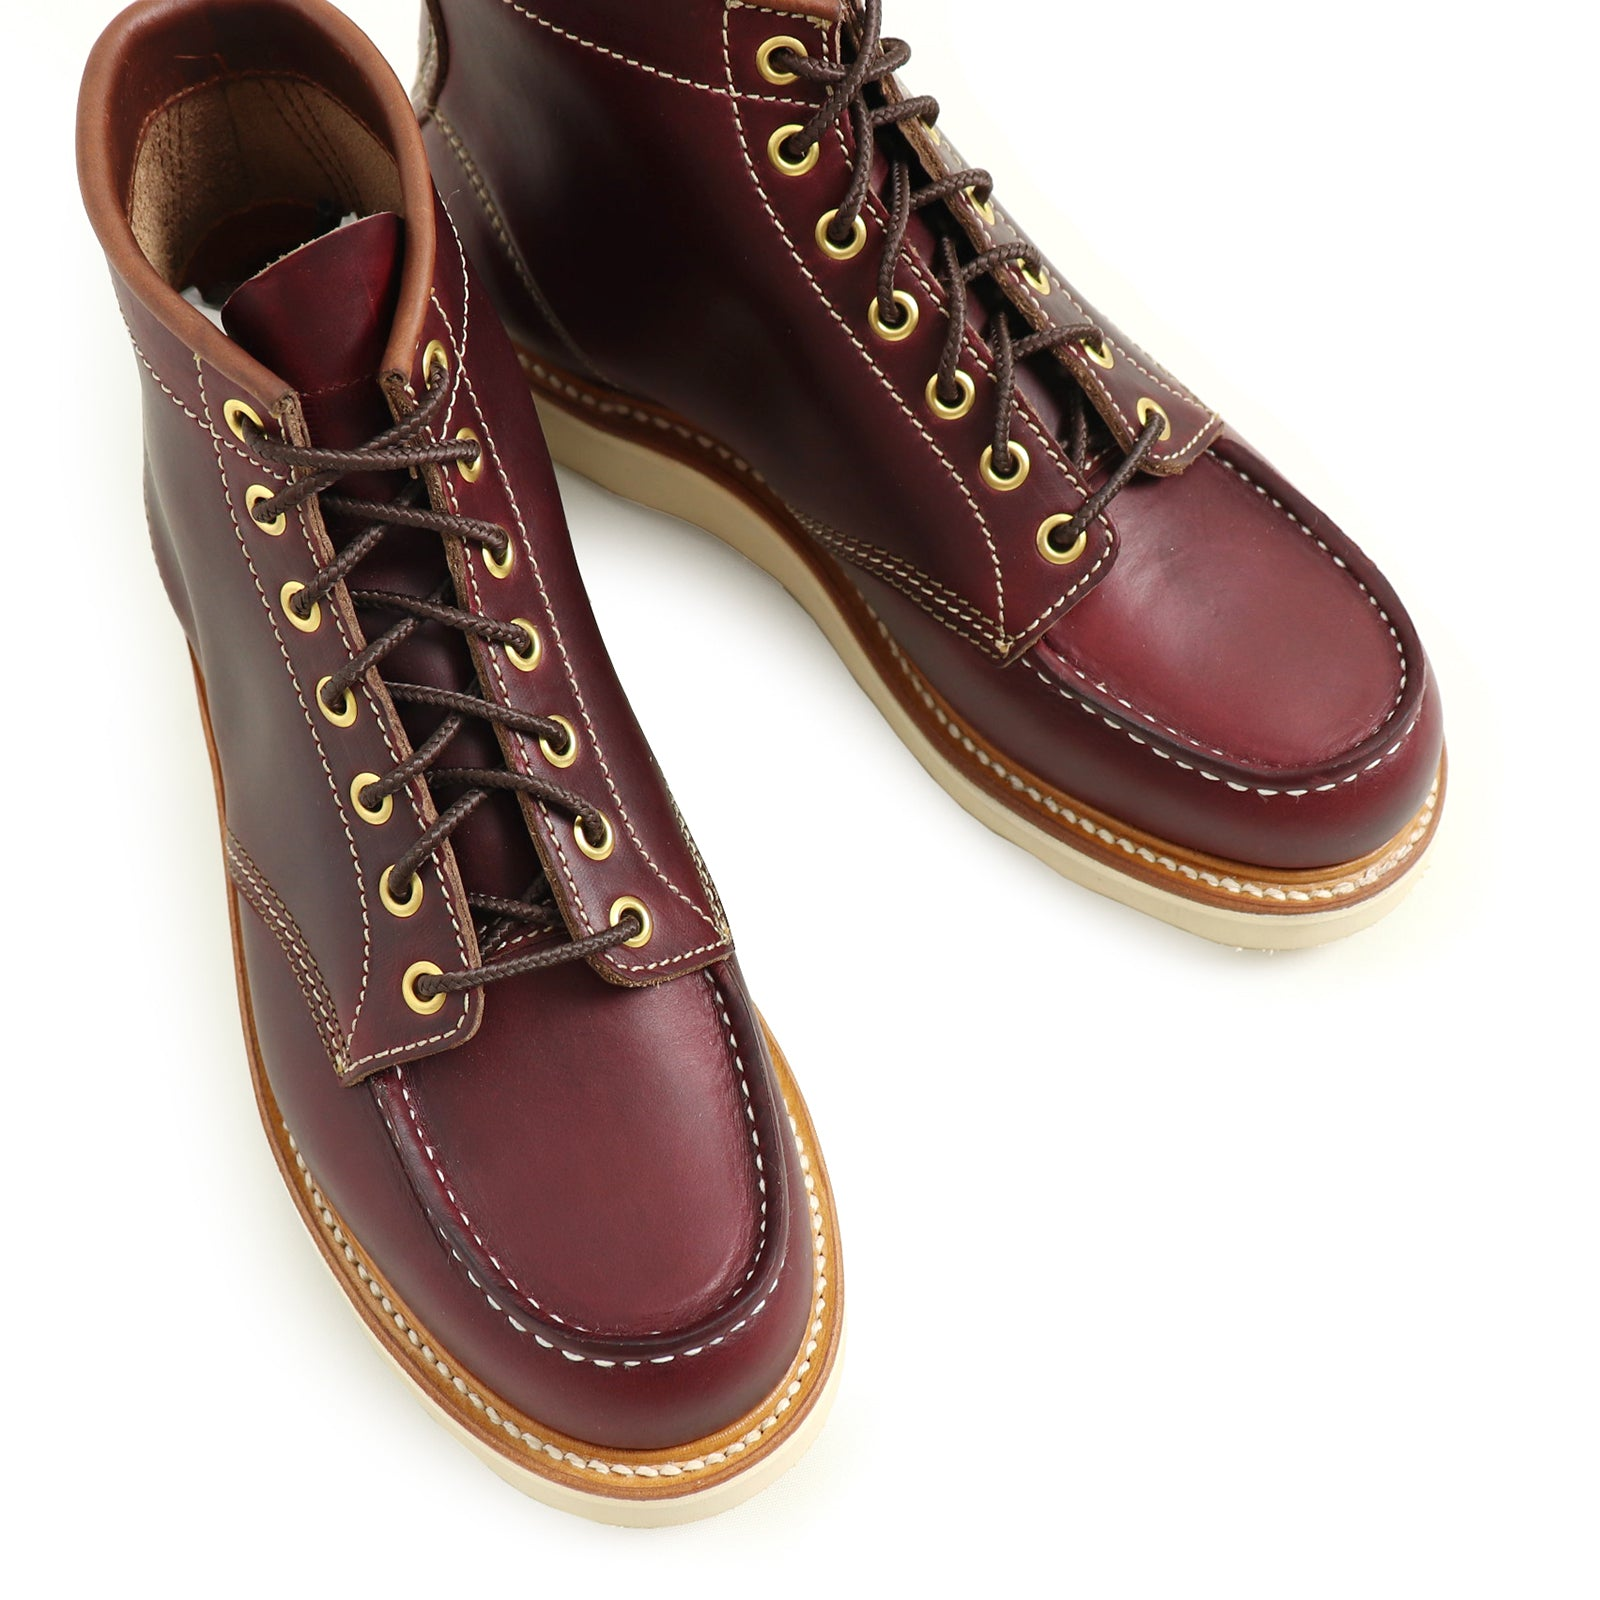 Units commercial leather shoes with leather soles